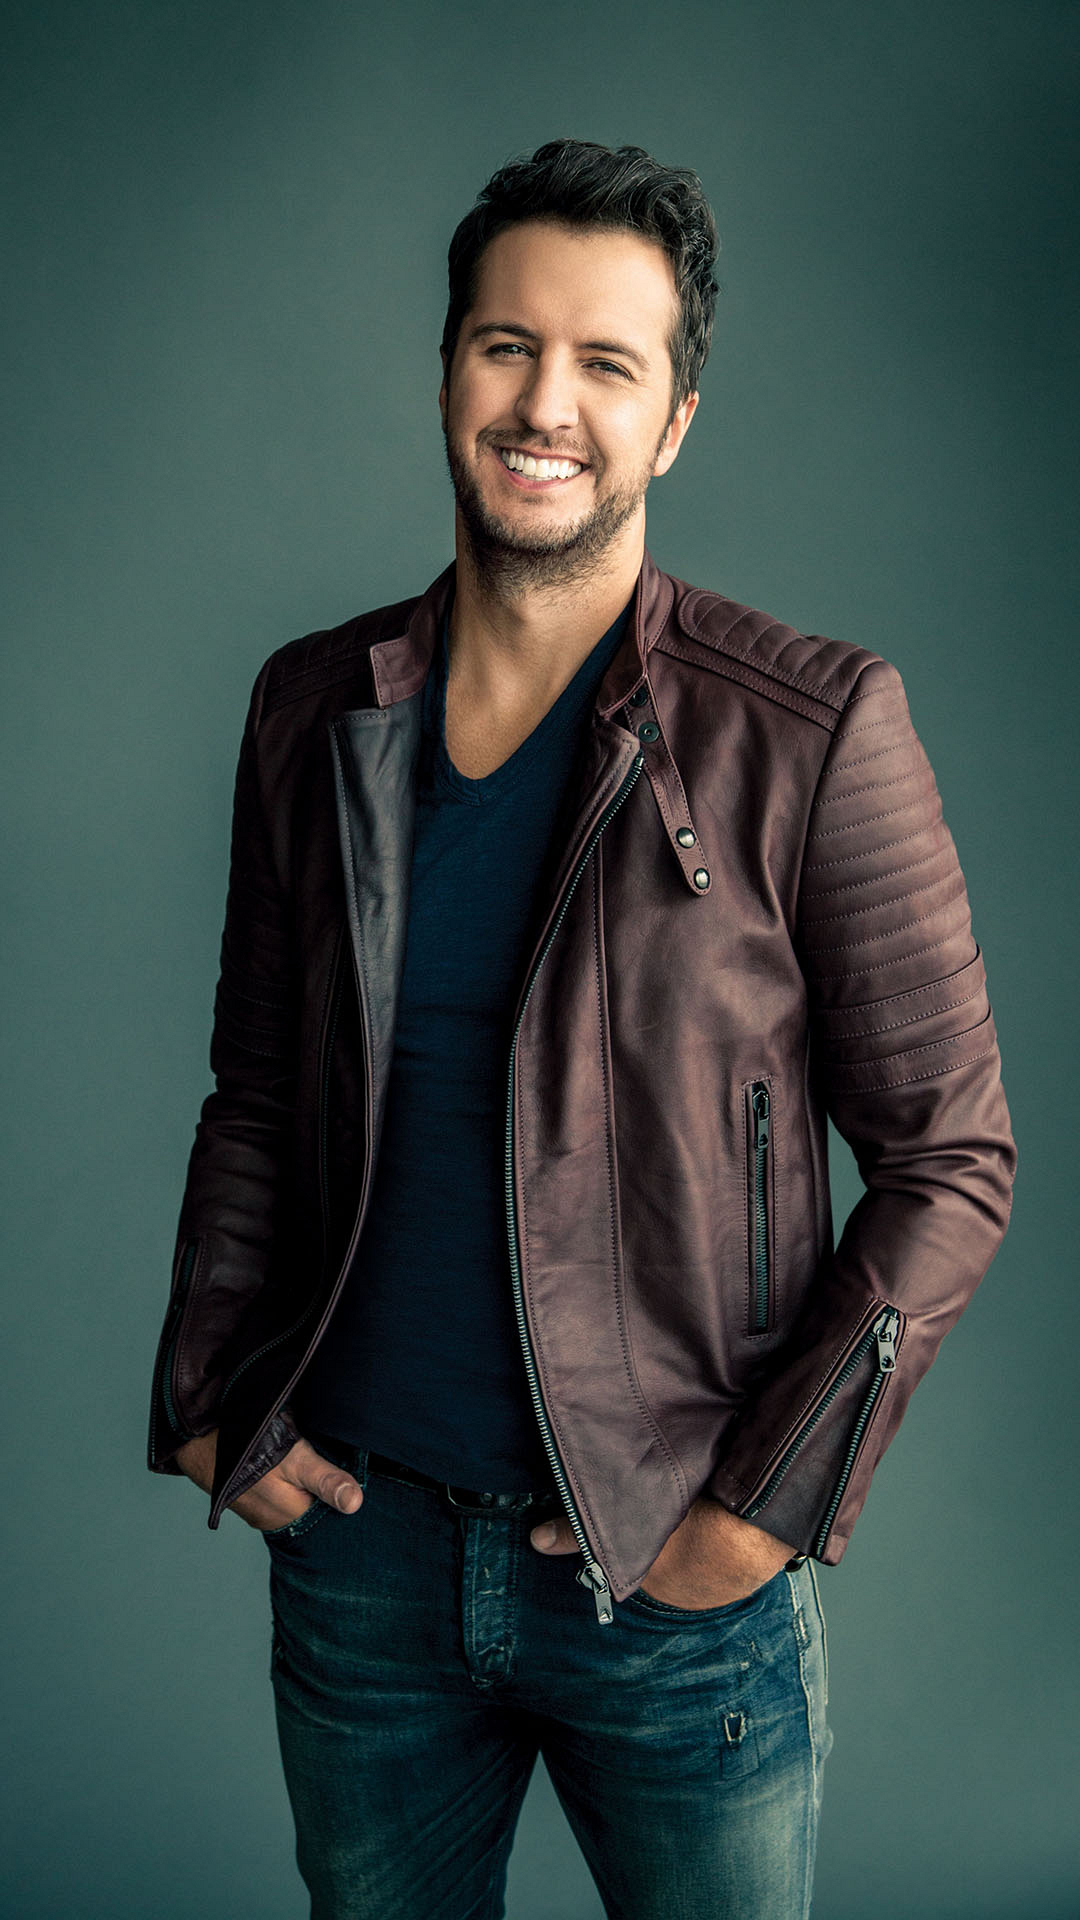 Luke Bryan and everyone!